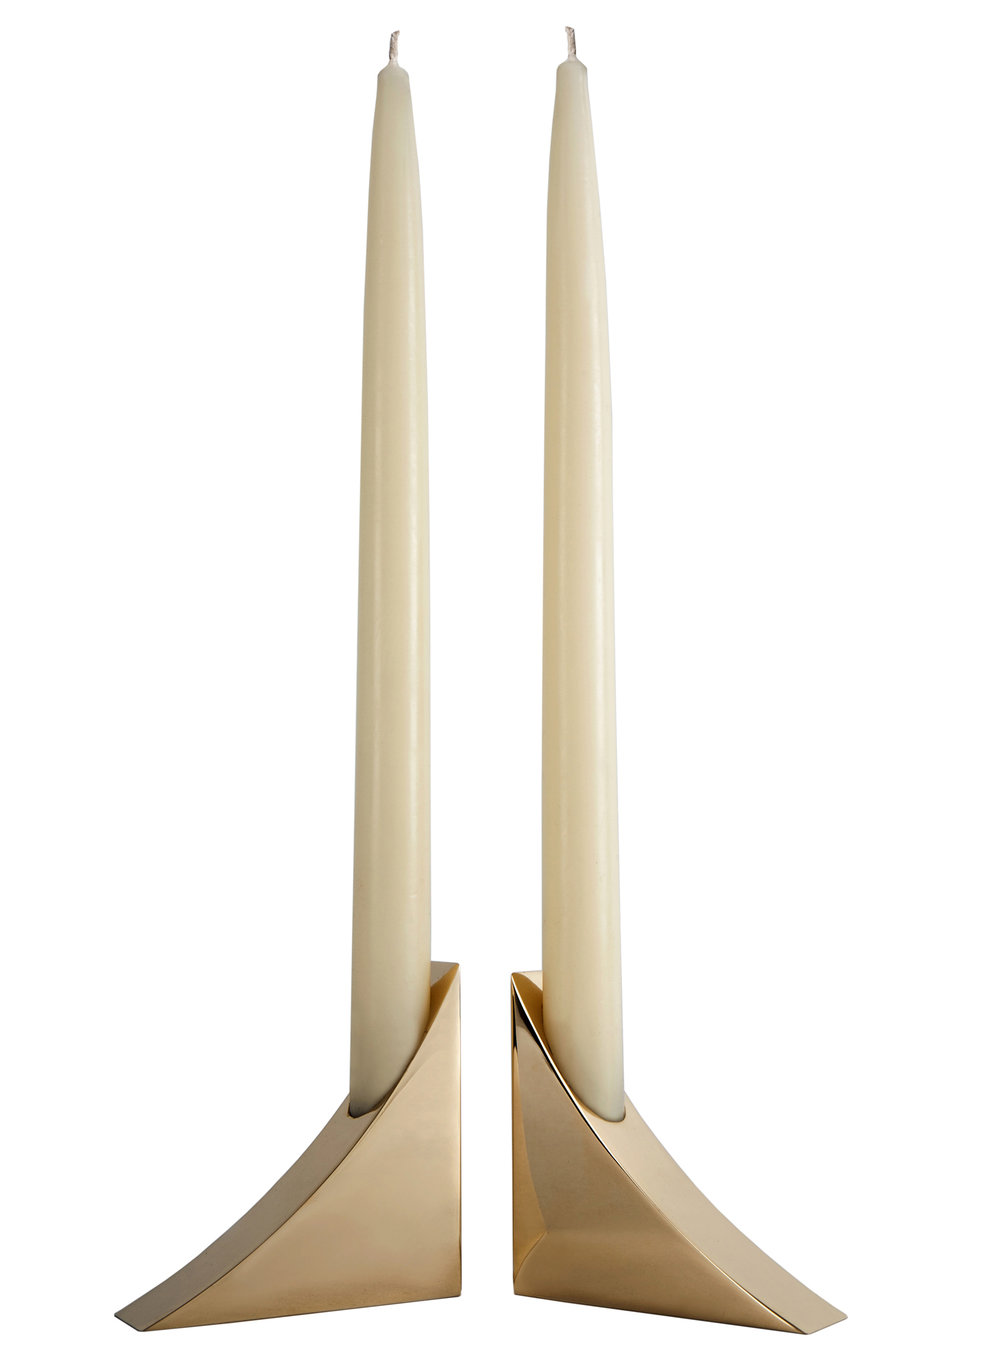 WAVE CANDLE STICK